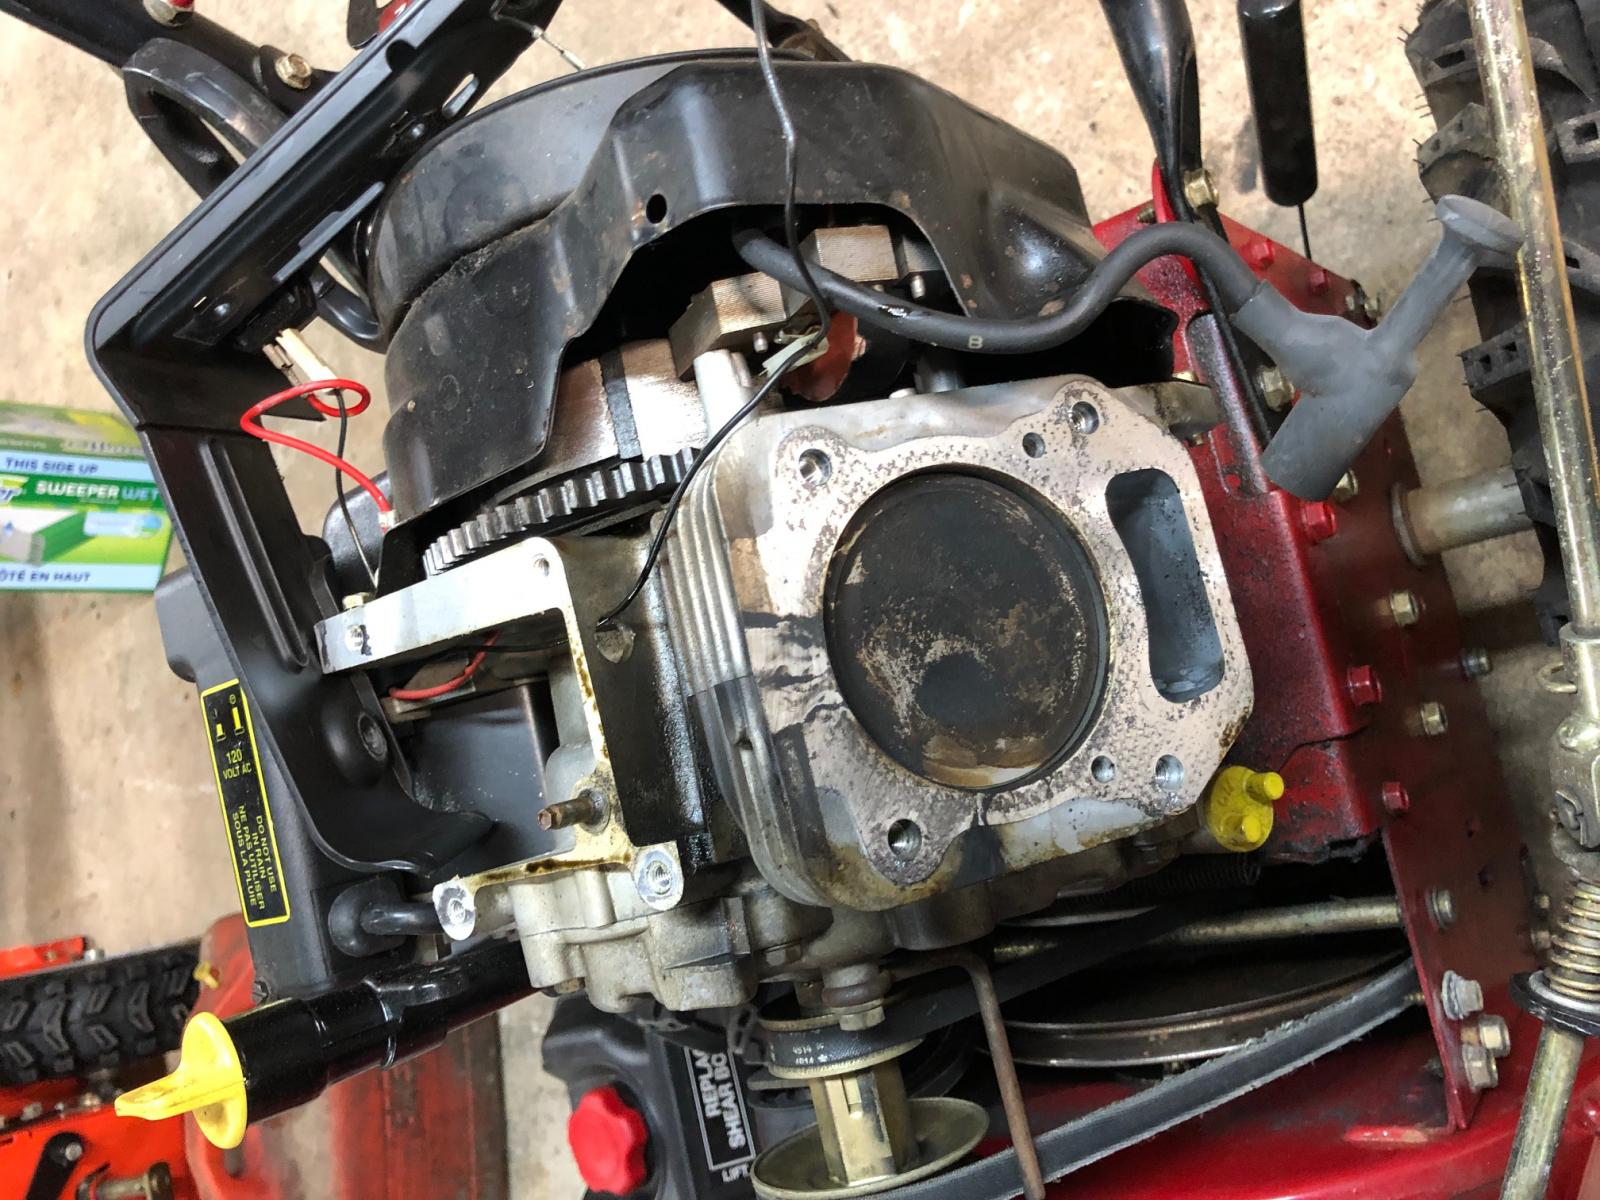 Head Gasket Replacement of an 8 5 HP OHV Briggs Engine - Snowblower